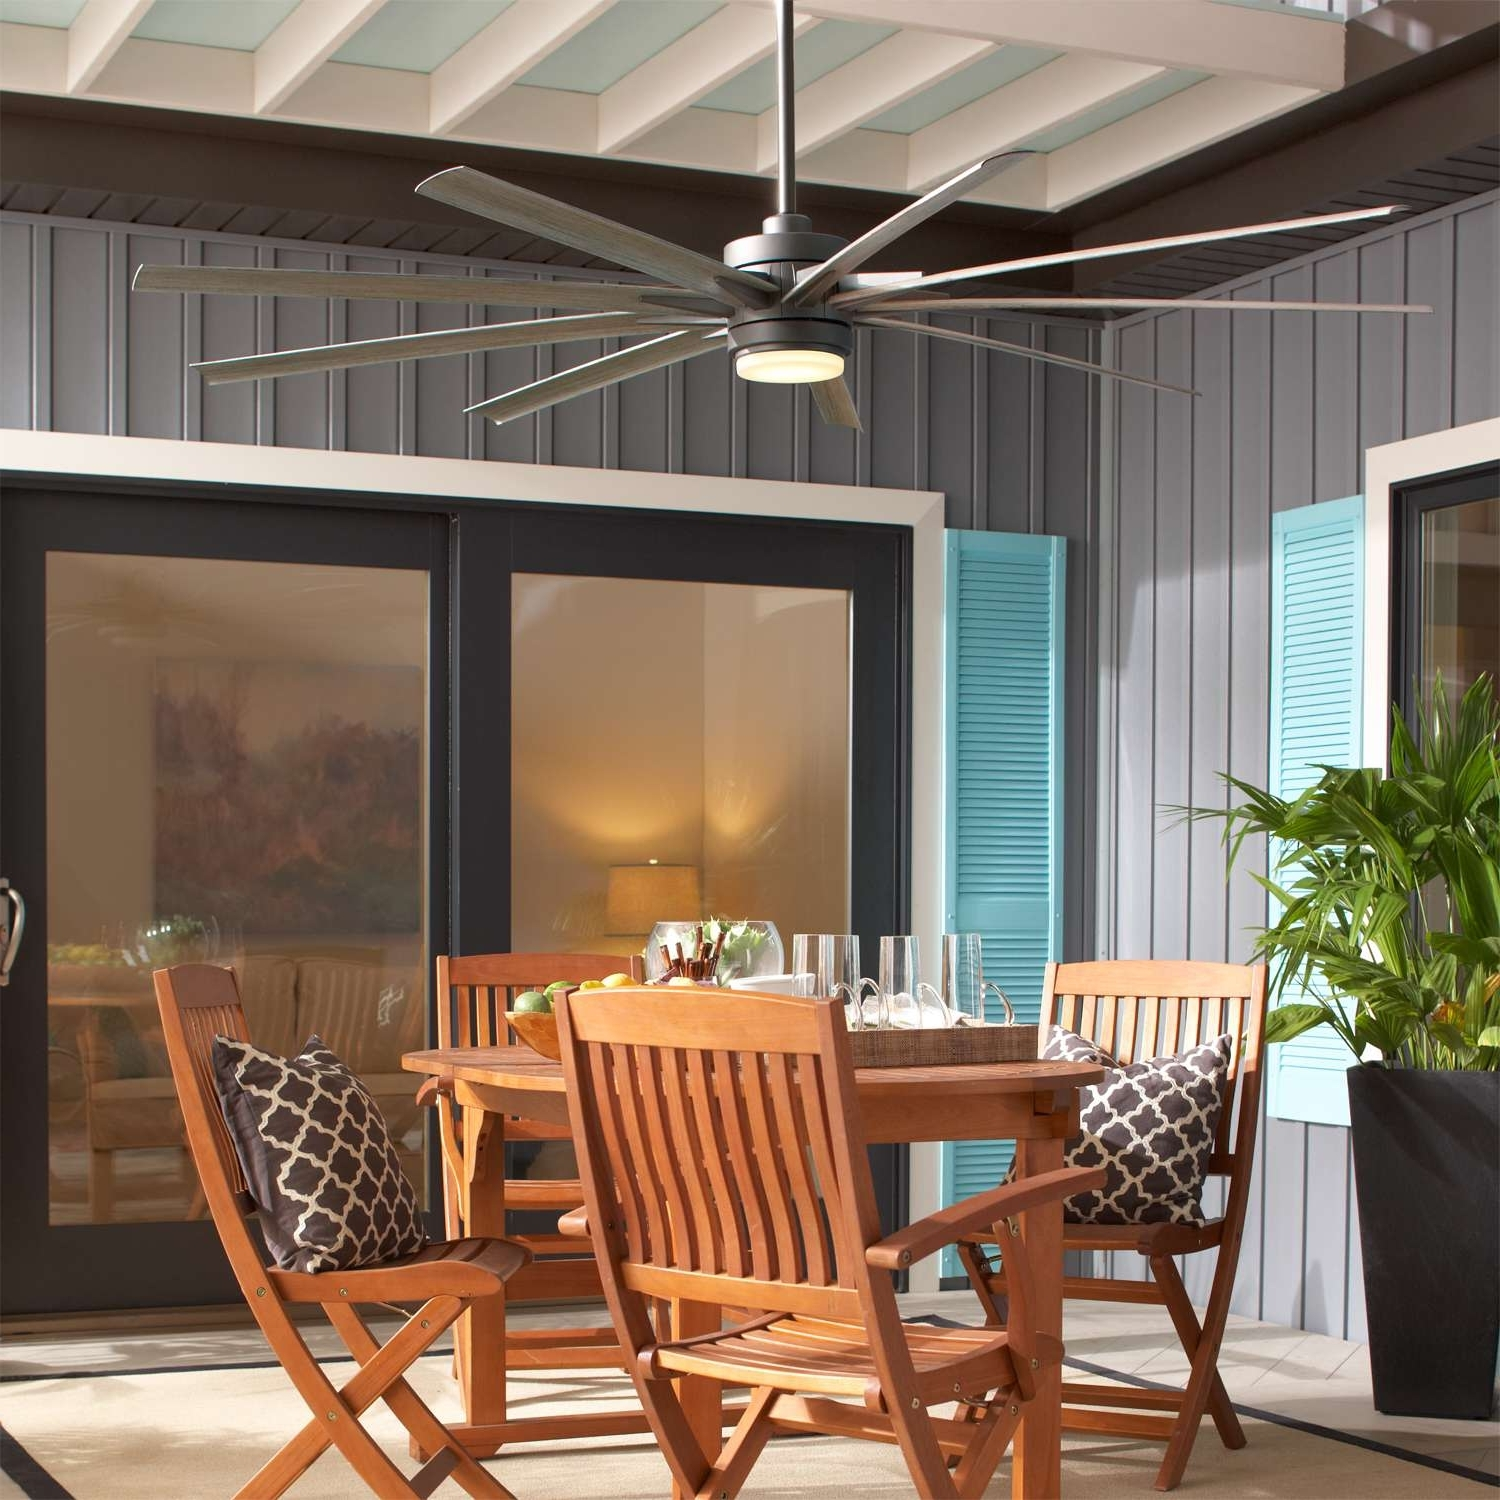 Outdoor Patio Ceiling Fans (View 8 of 20)